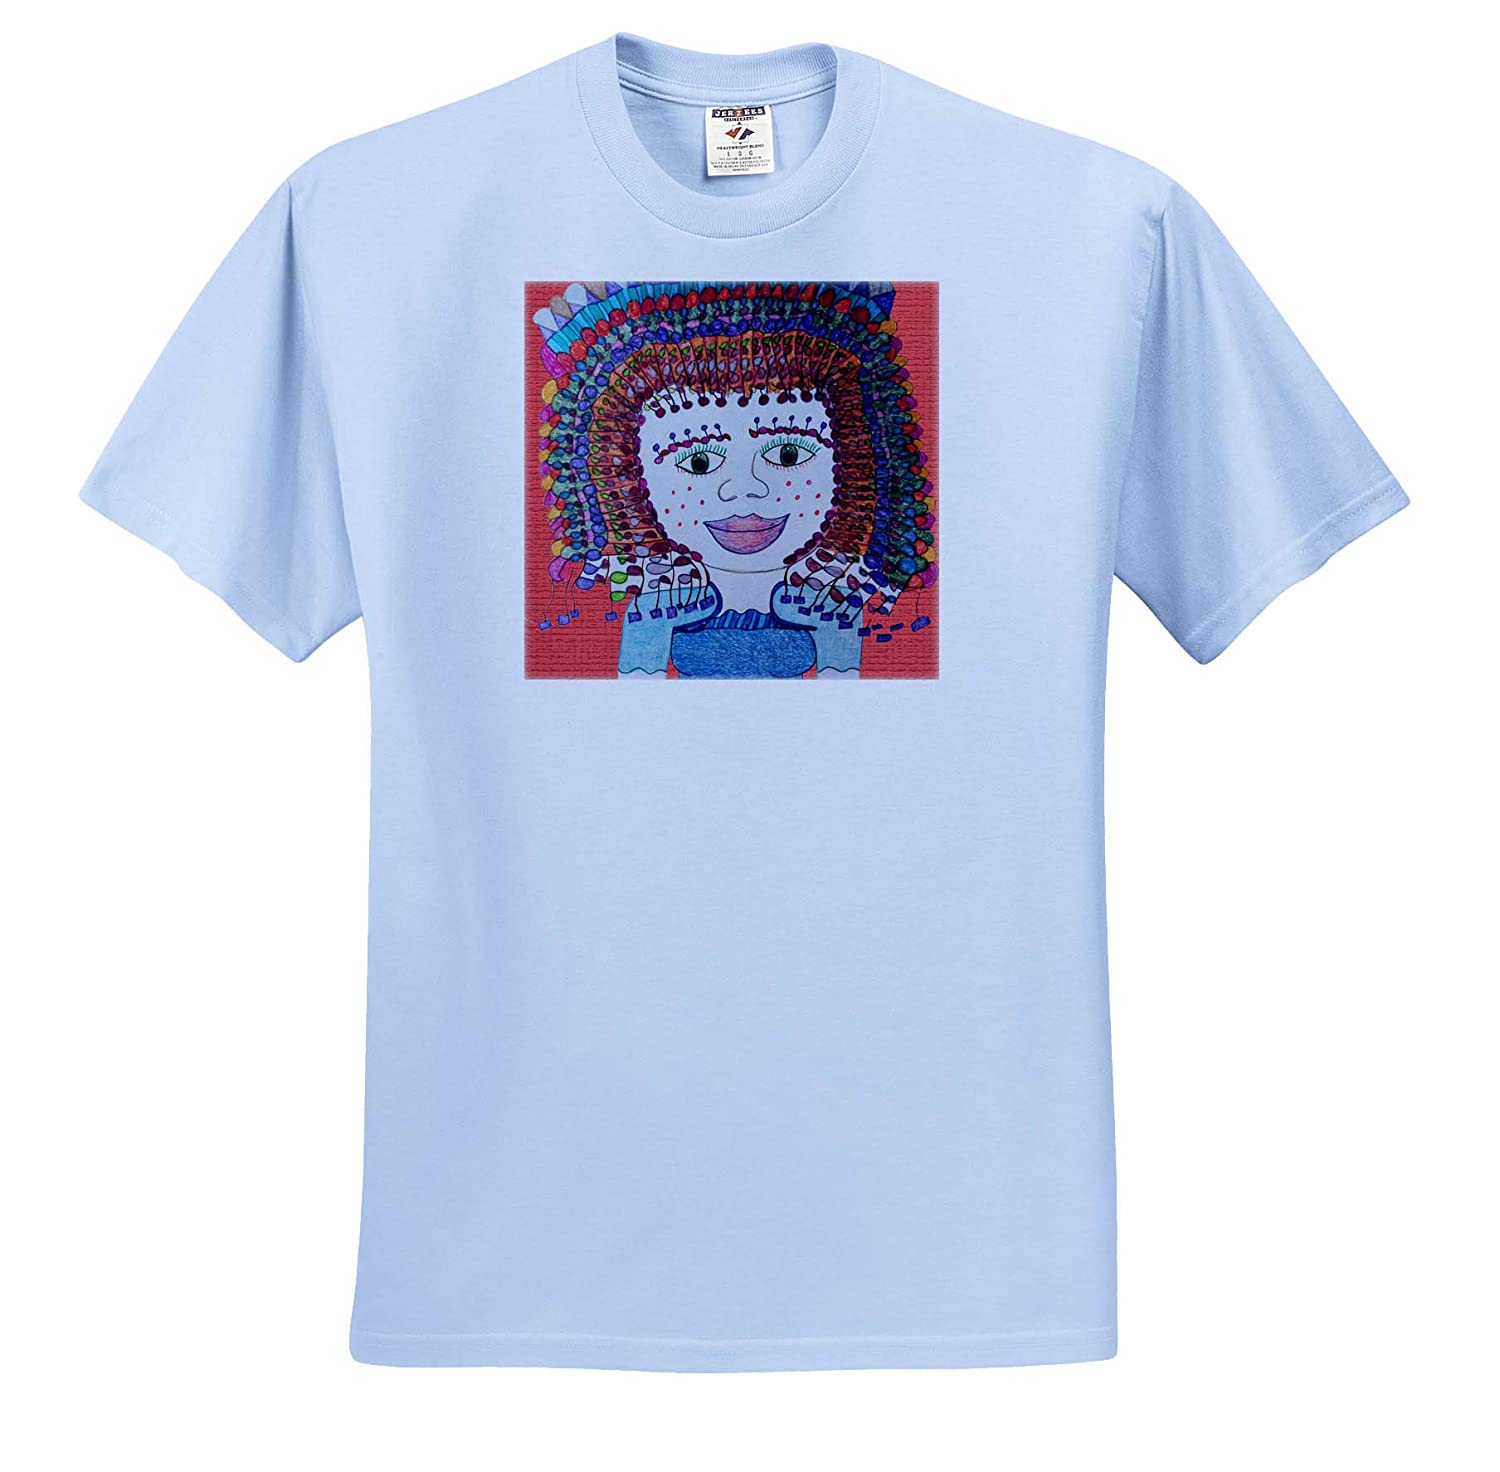 T-Shirts an Orange red Background with a Curly Headed Freckled Girl Jos Faux Doll Coral 3dRose Jos Fauxtographee